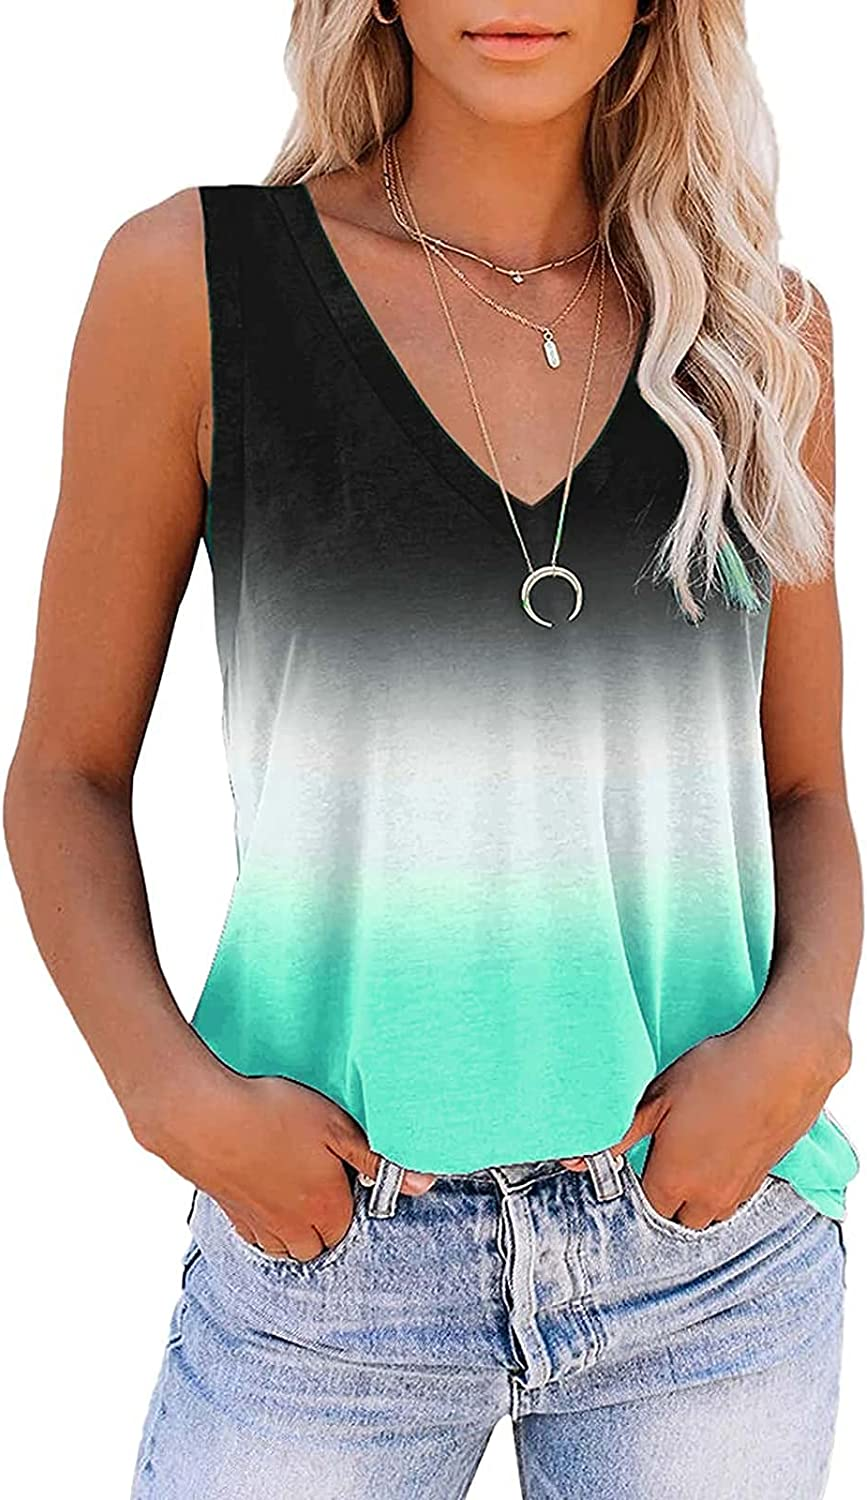 AODONG Womens Summer Tops, Gradient Sleeveless V Neck Tank Tops for Women Summer Cute Loose Workout Athletic Yoga Shirts